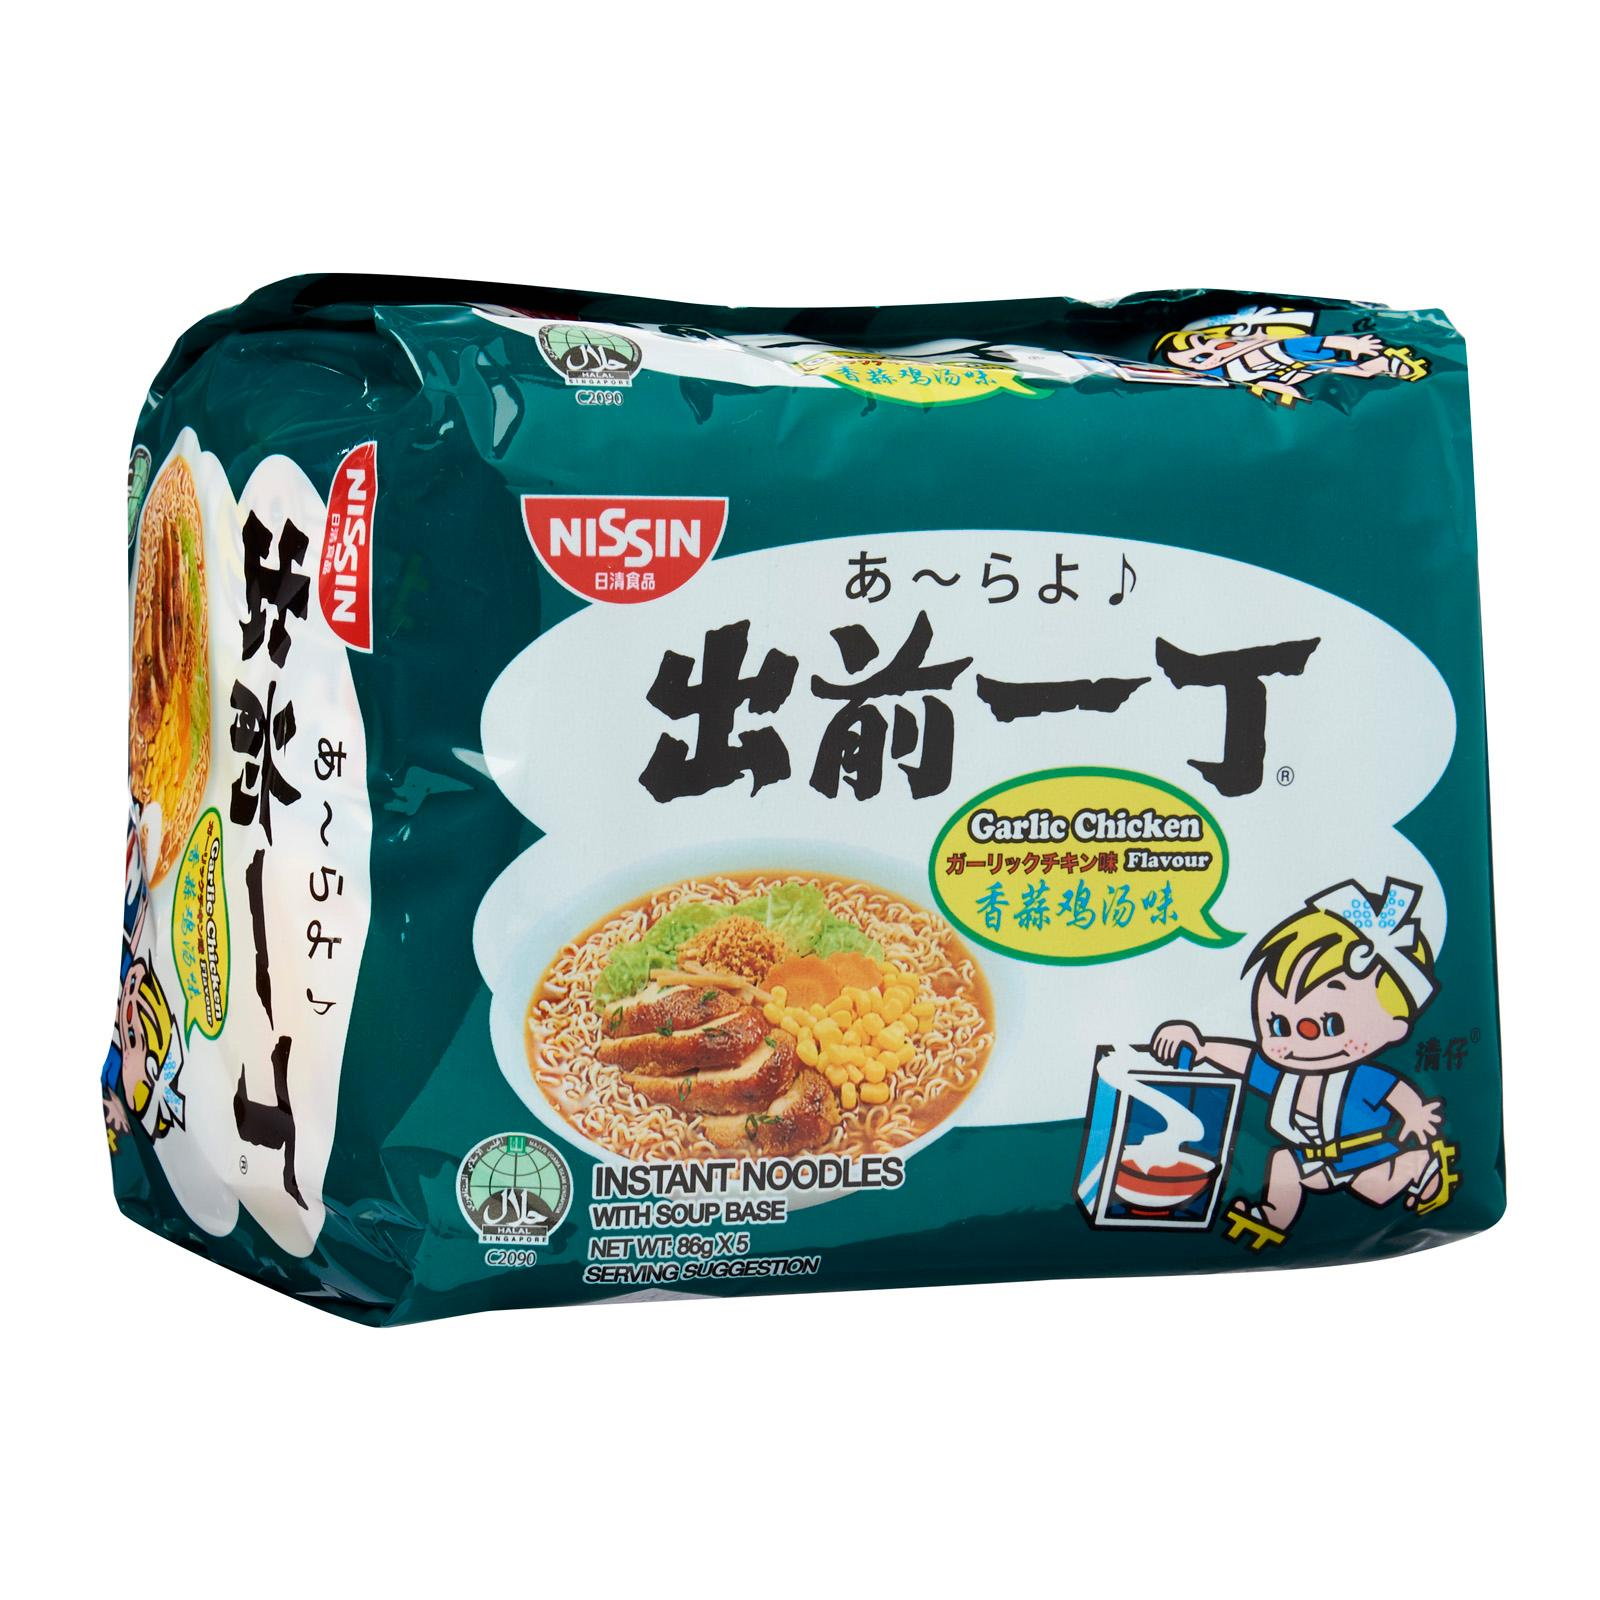 Nissin Chu Qian Yi Ding Garlic Chicken Instant Noodles With Soup Base 5 x 86 g